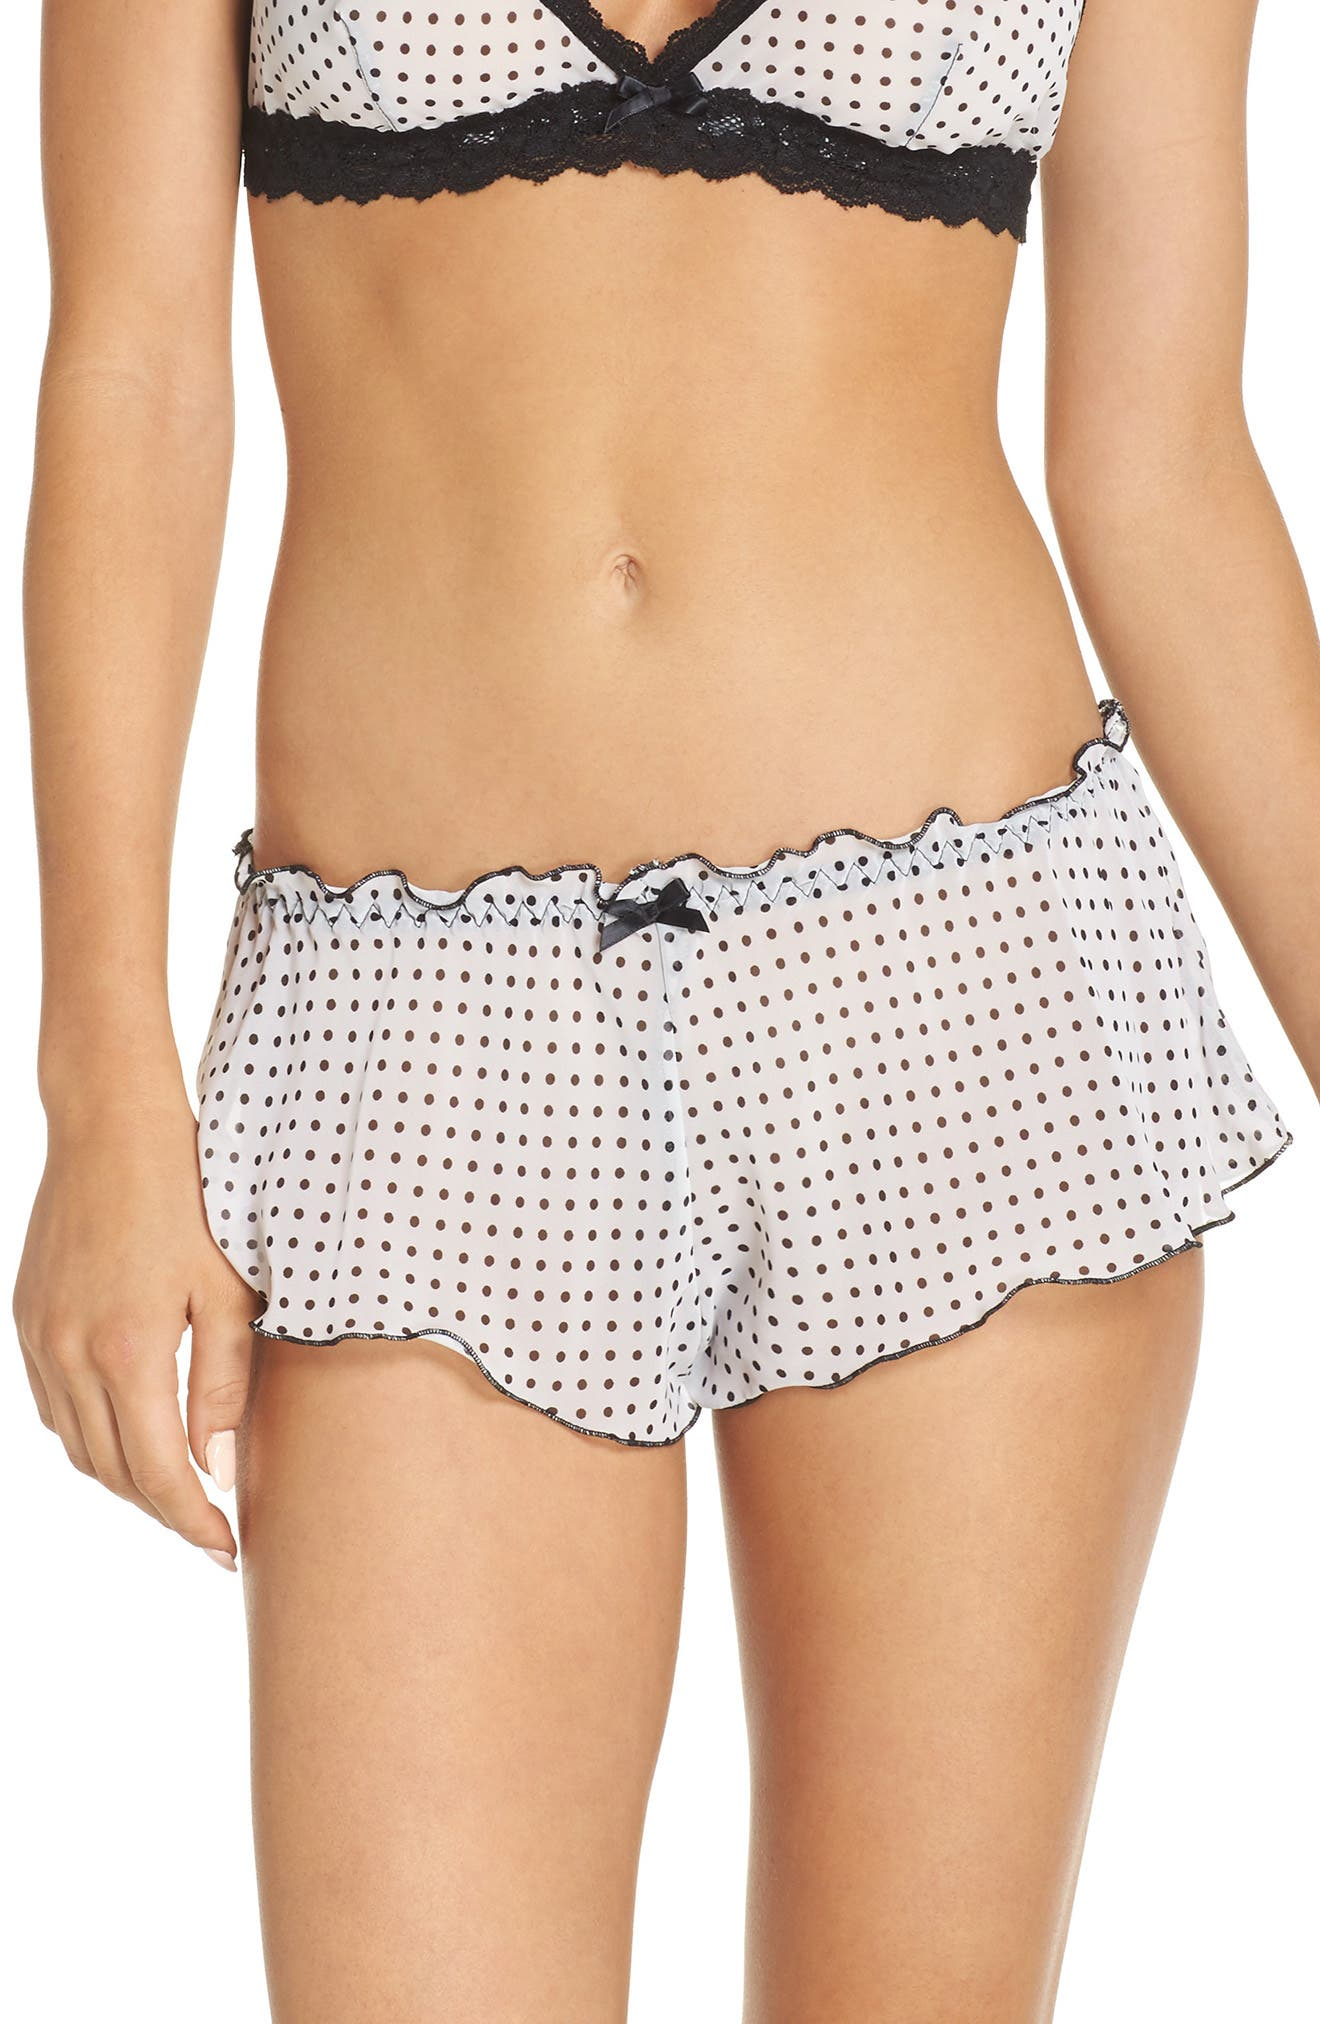 Main Image - Hanky Panky Spot On Chiffon Tap Shorts